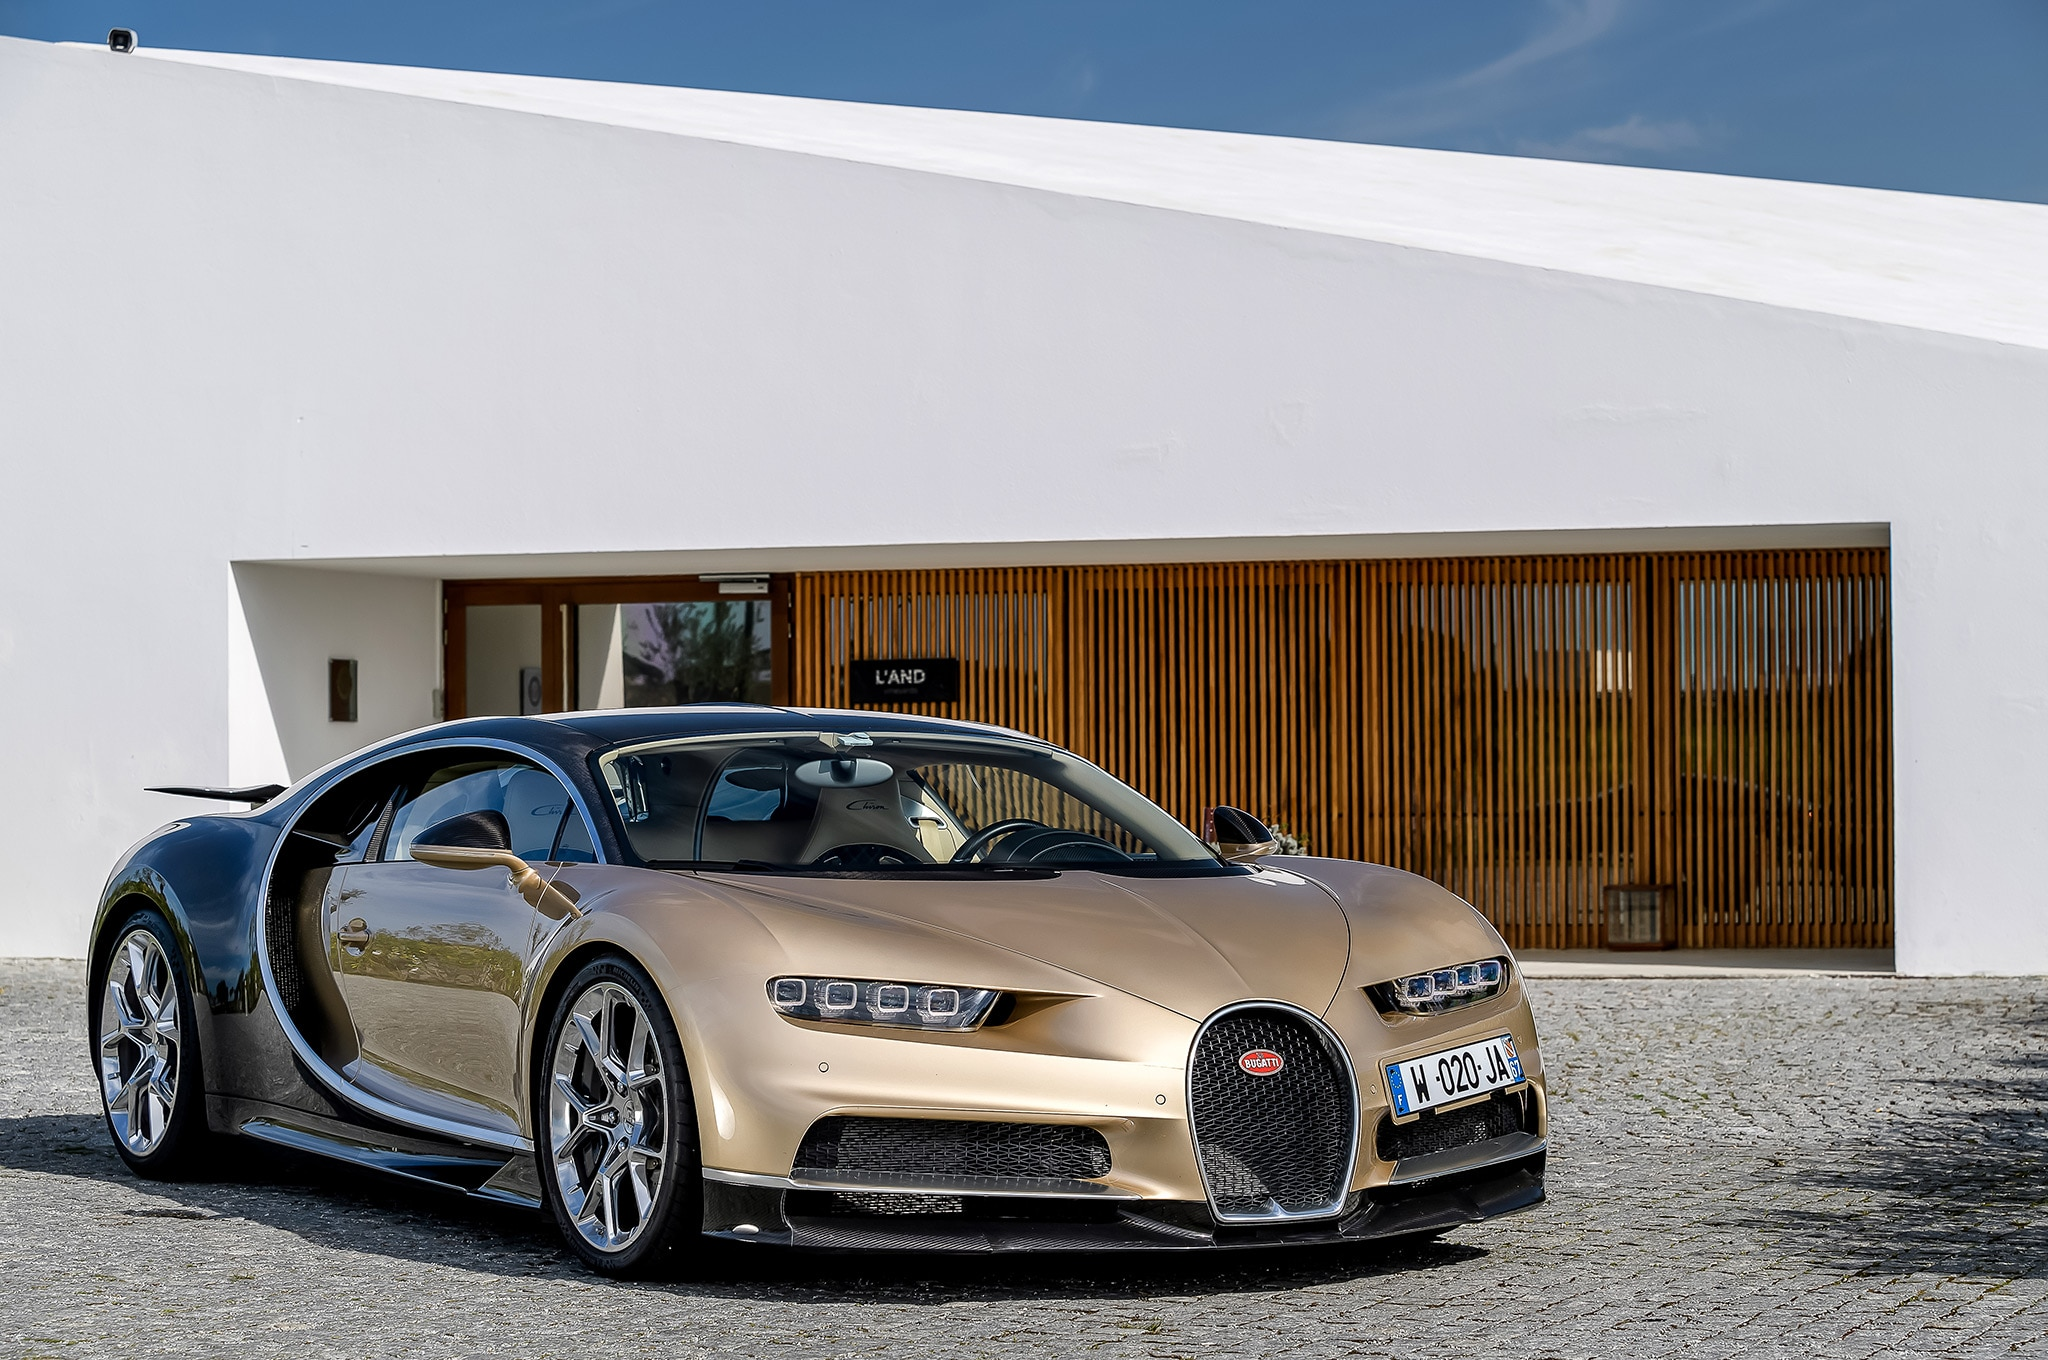 special pleasantly slacken hifi speed at cabin extra car chiron is some noisy index dampers bugatti so review gear strong ride diamond supple the top veyron but was and